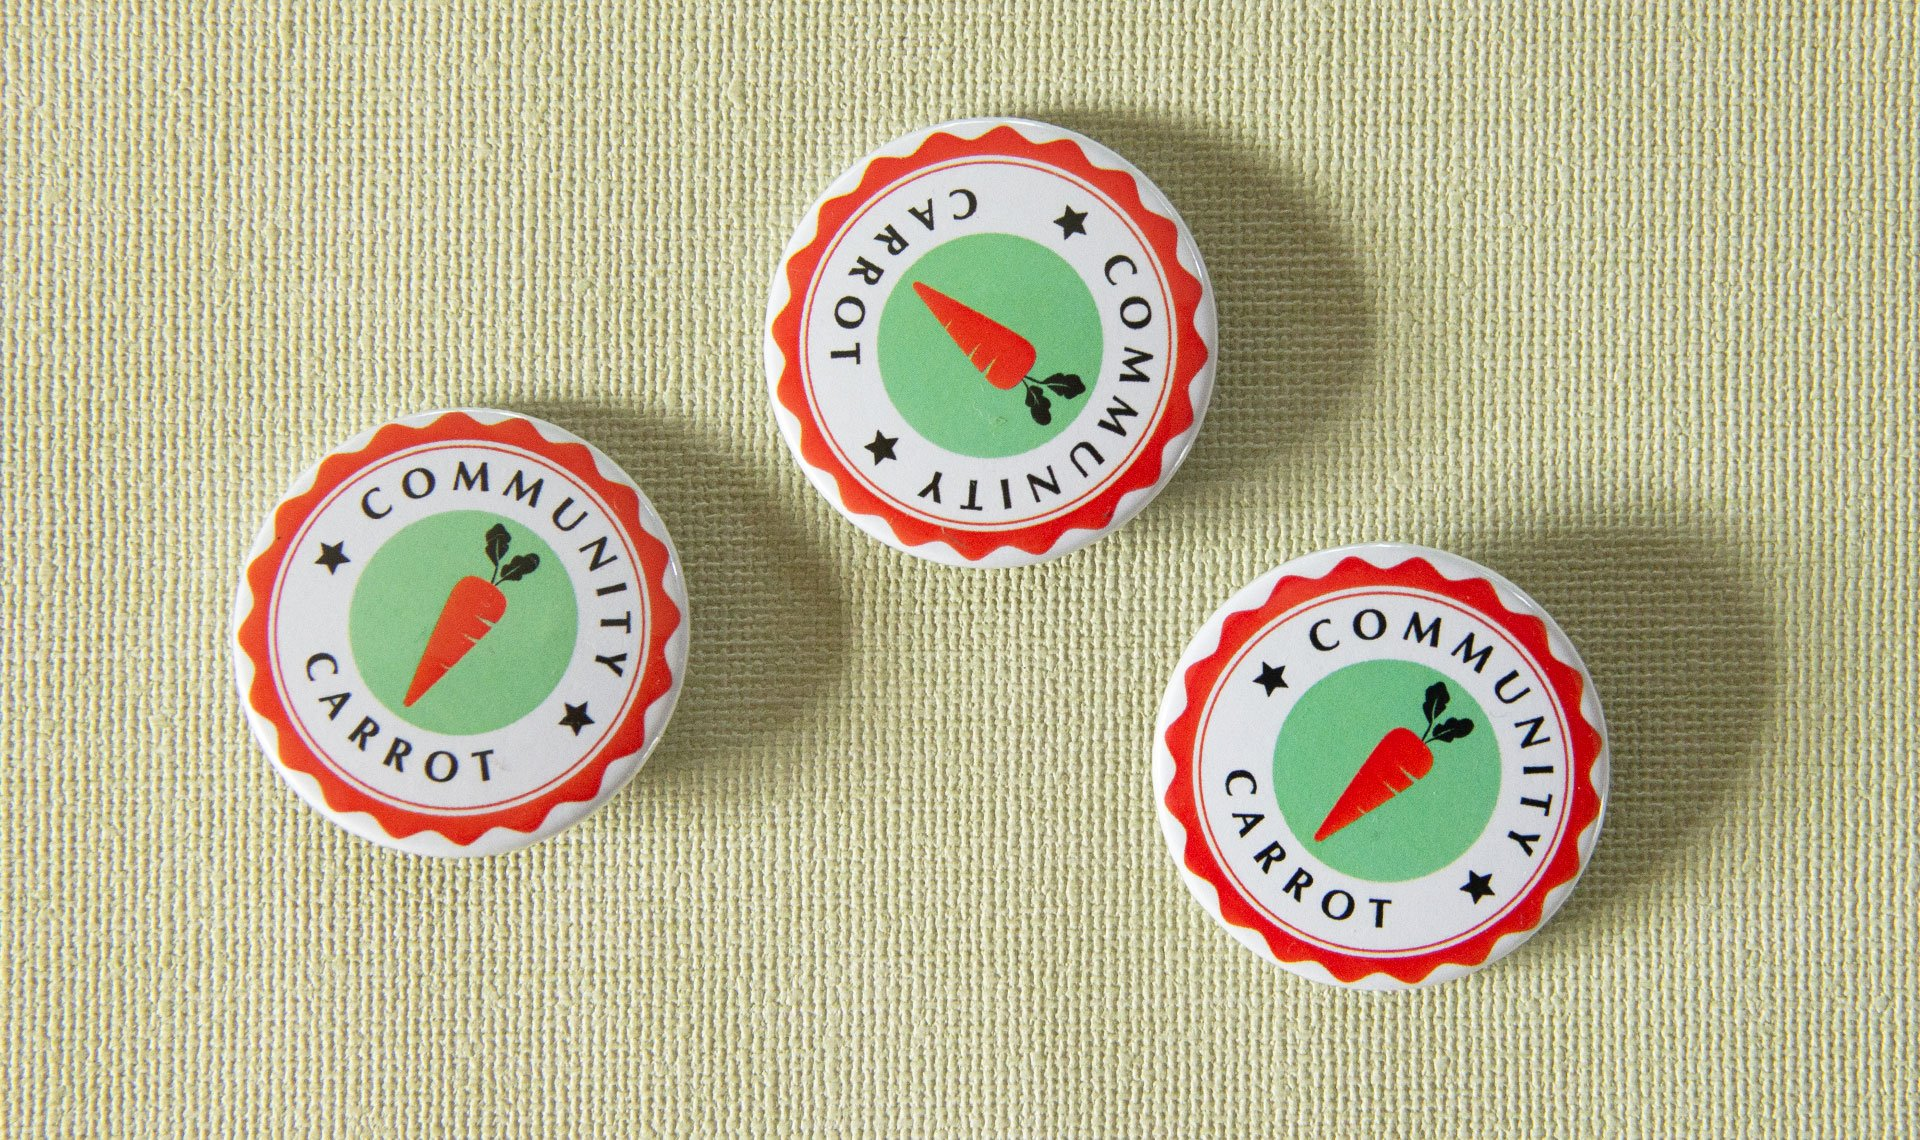 Community Carrot badges